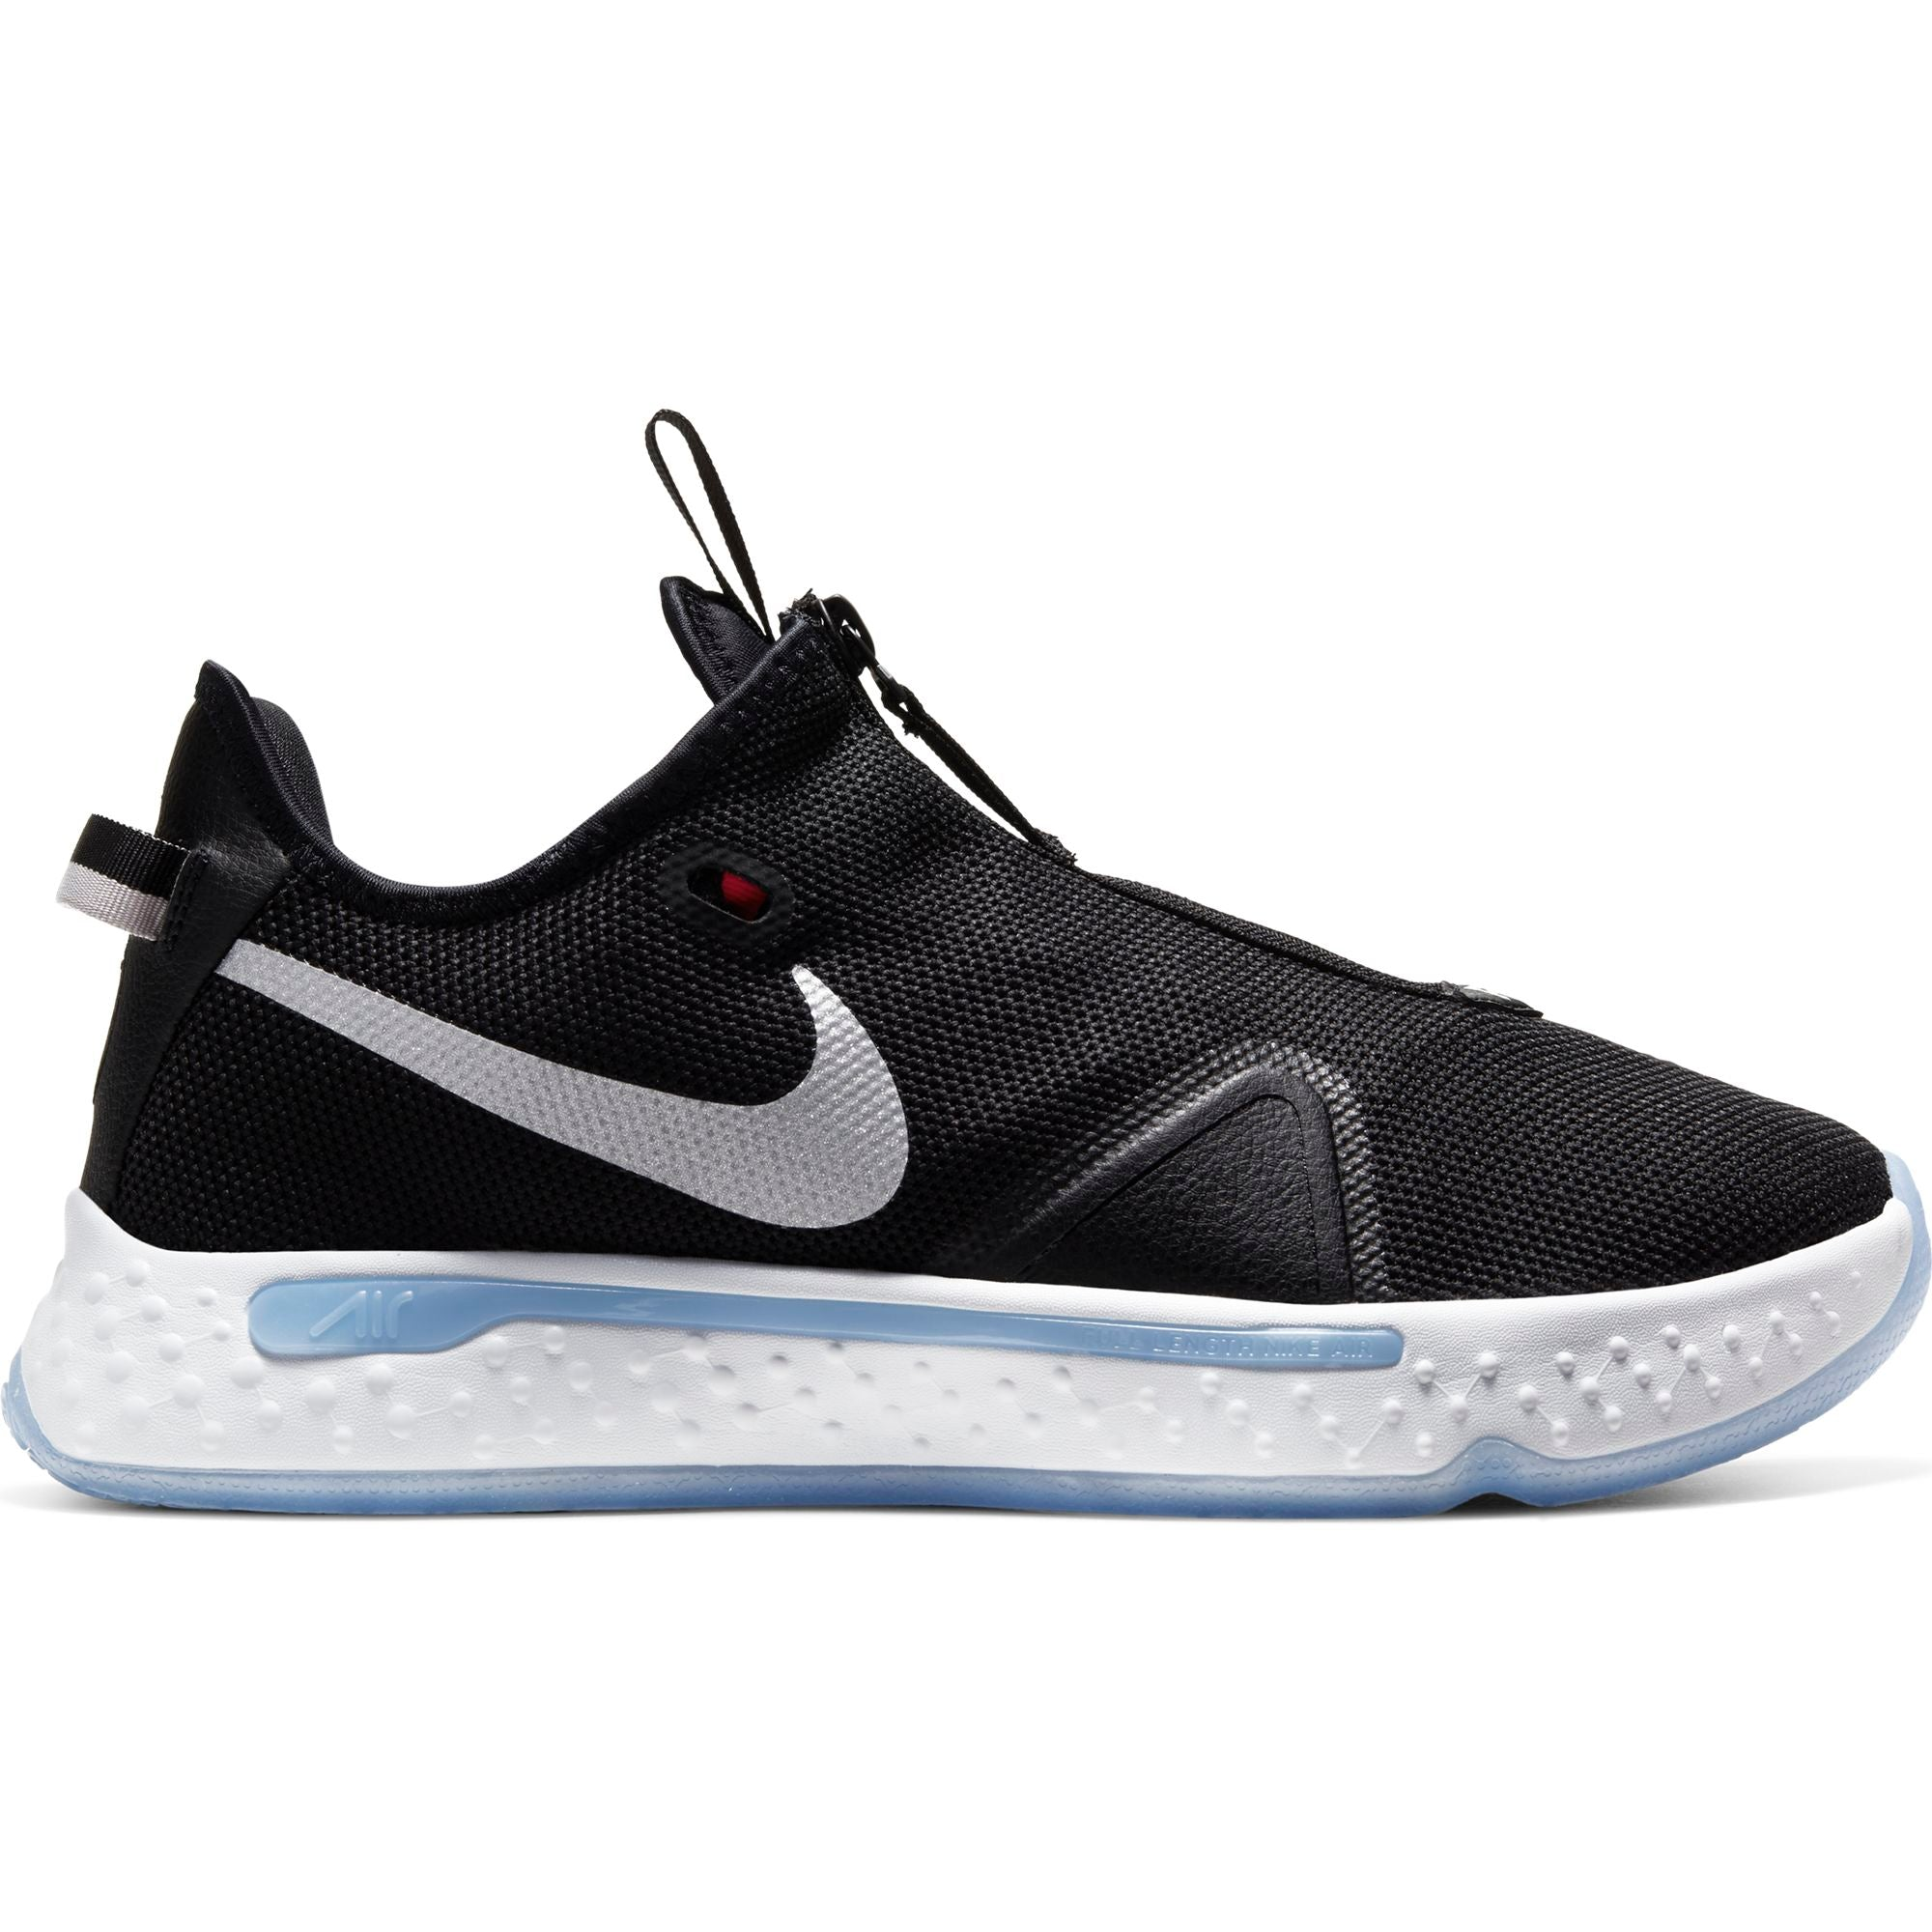 Nike PG 4 Basketball Shoe - Black/White/Light Smoke Grey